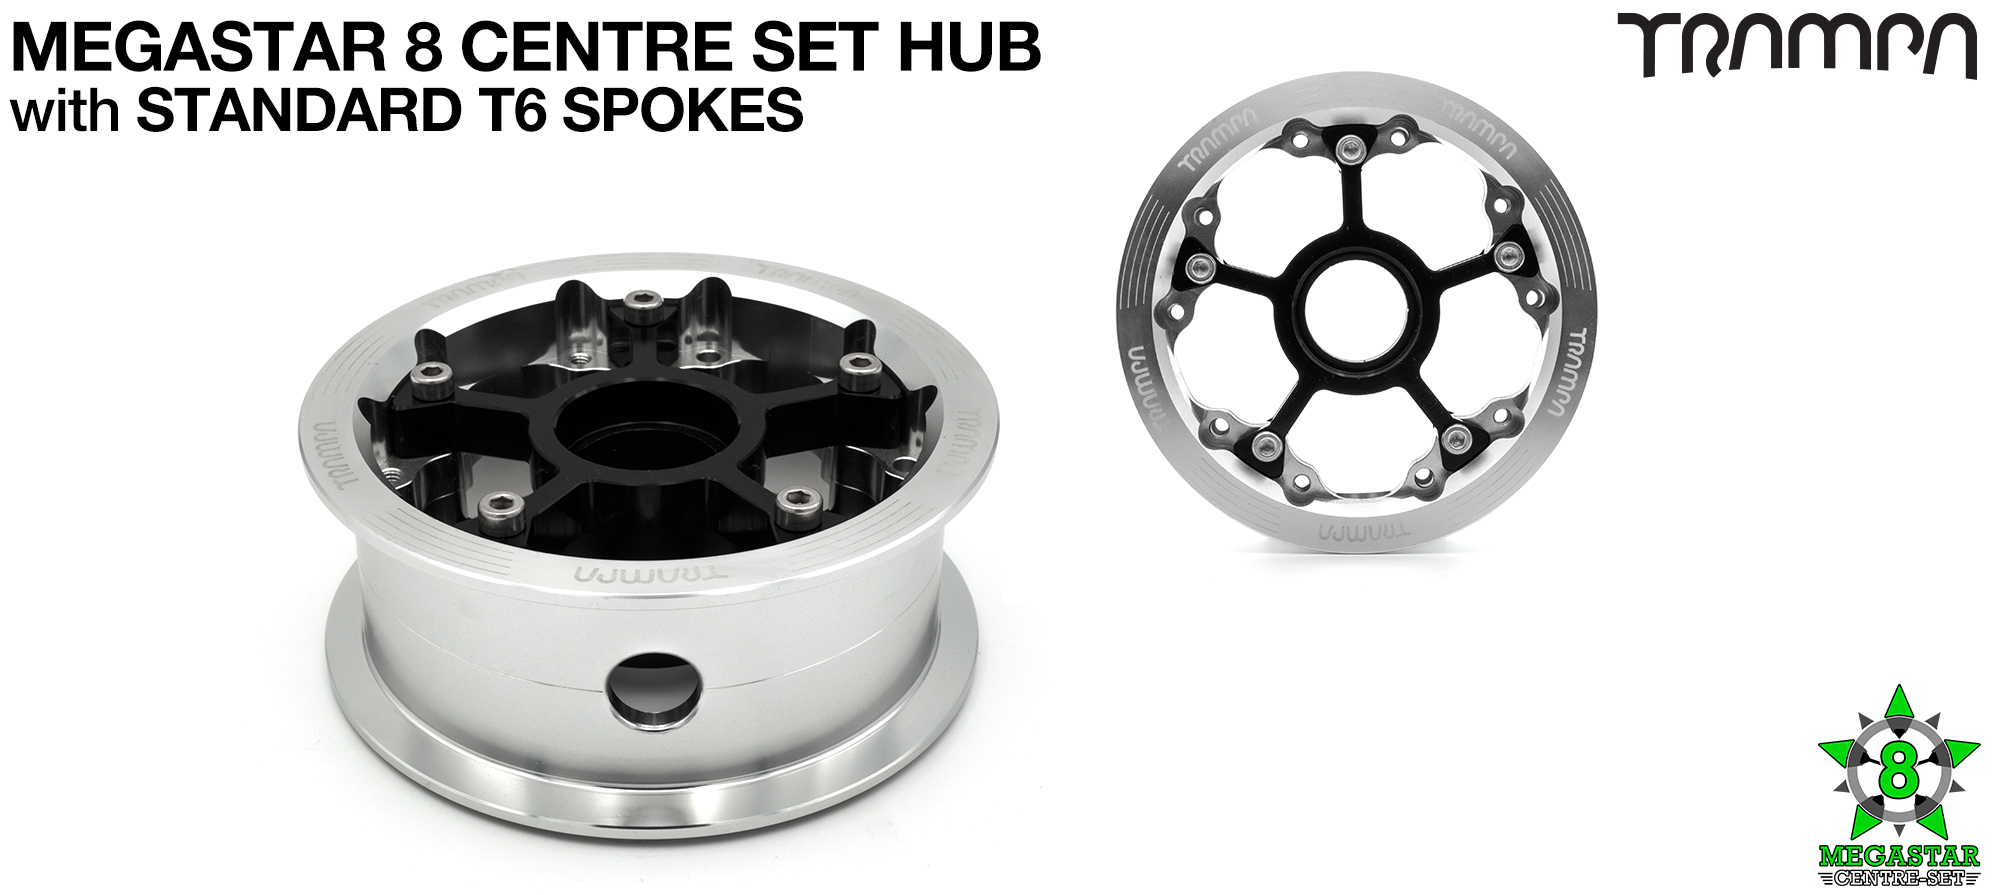 Custom 8 Inch MEGASTAR HUB! Build the SUPERSTAR Hub of your dreams!! Any combination possible...